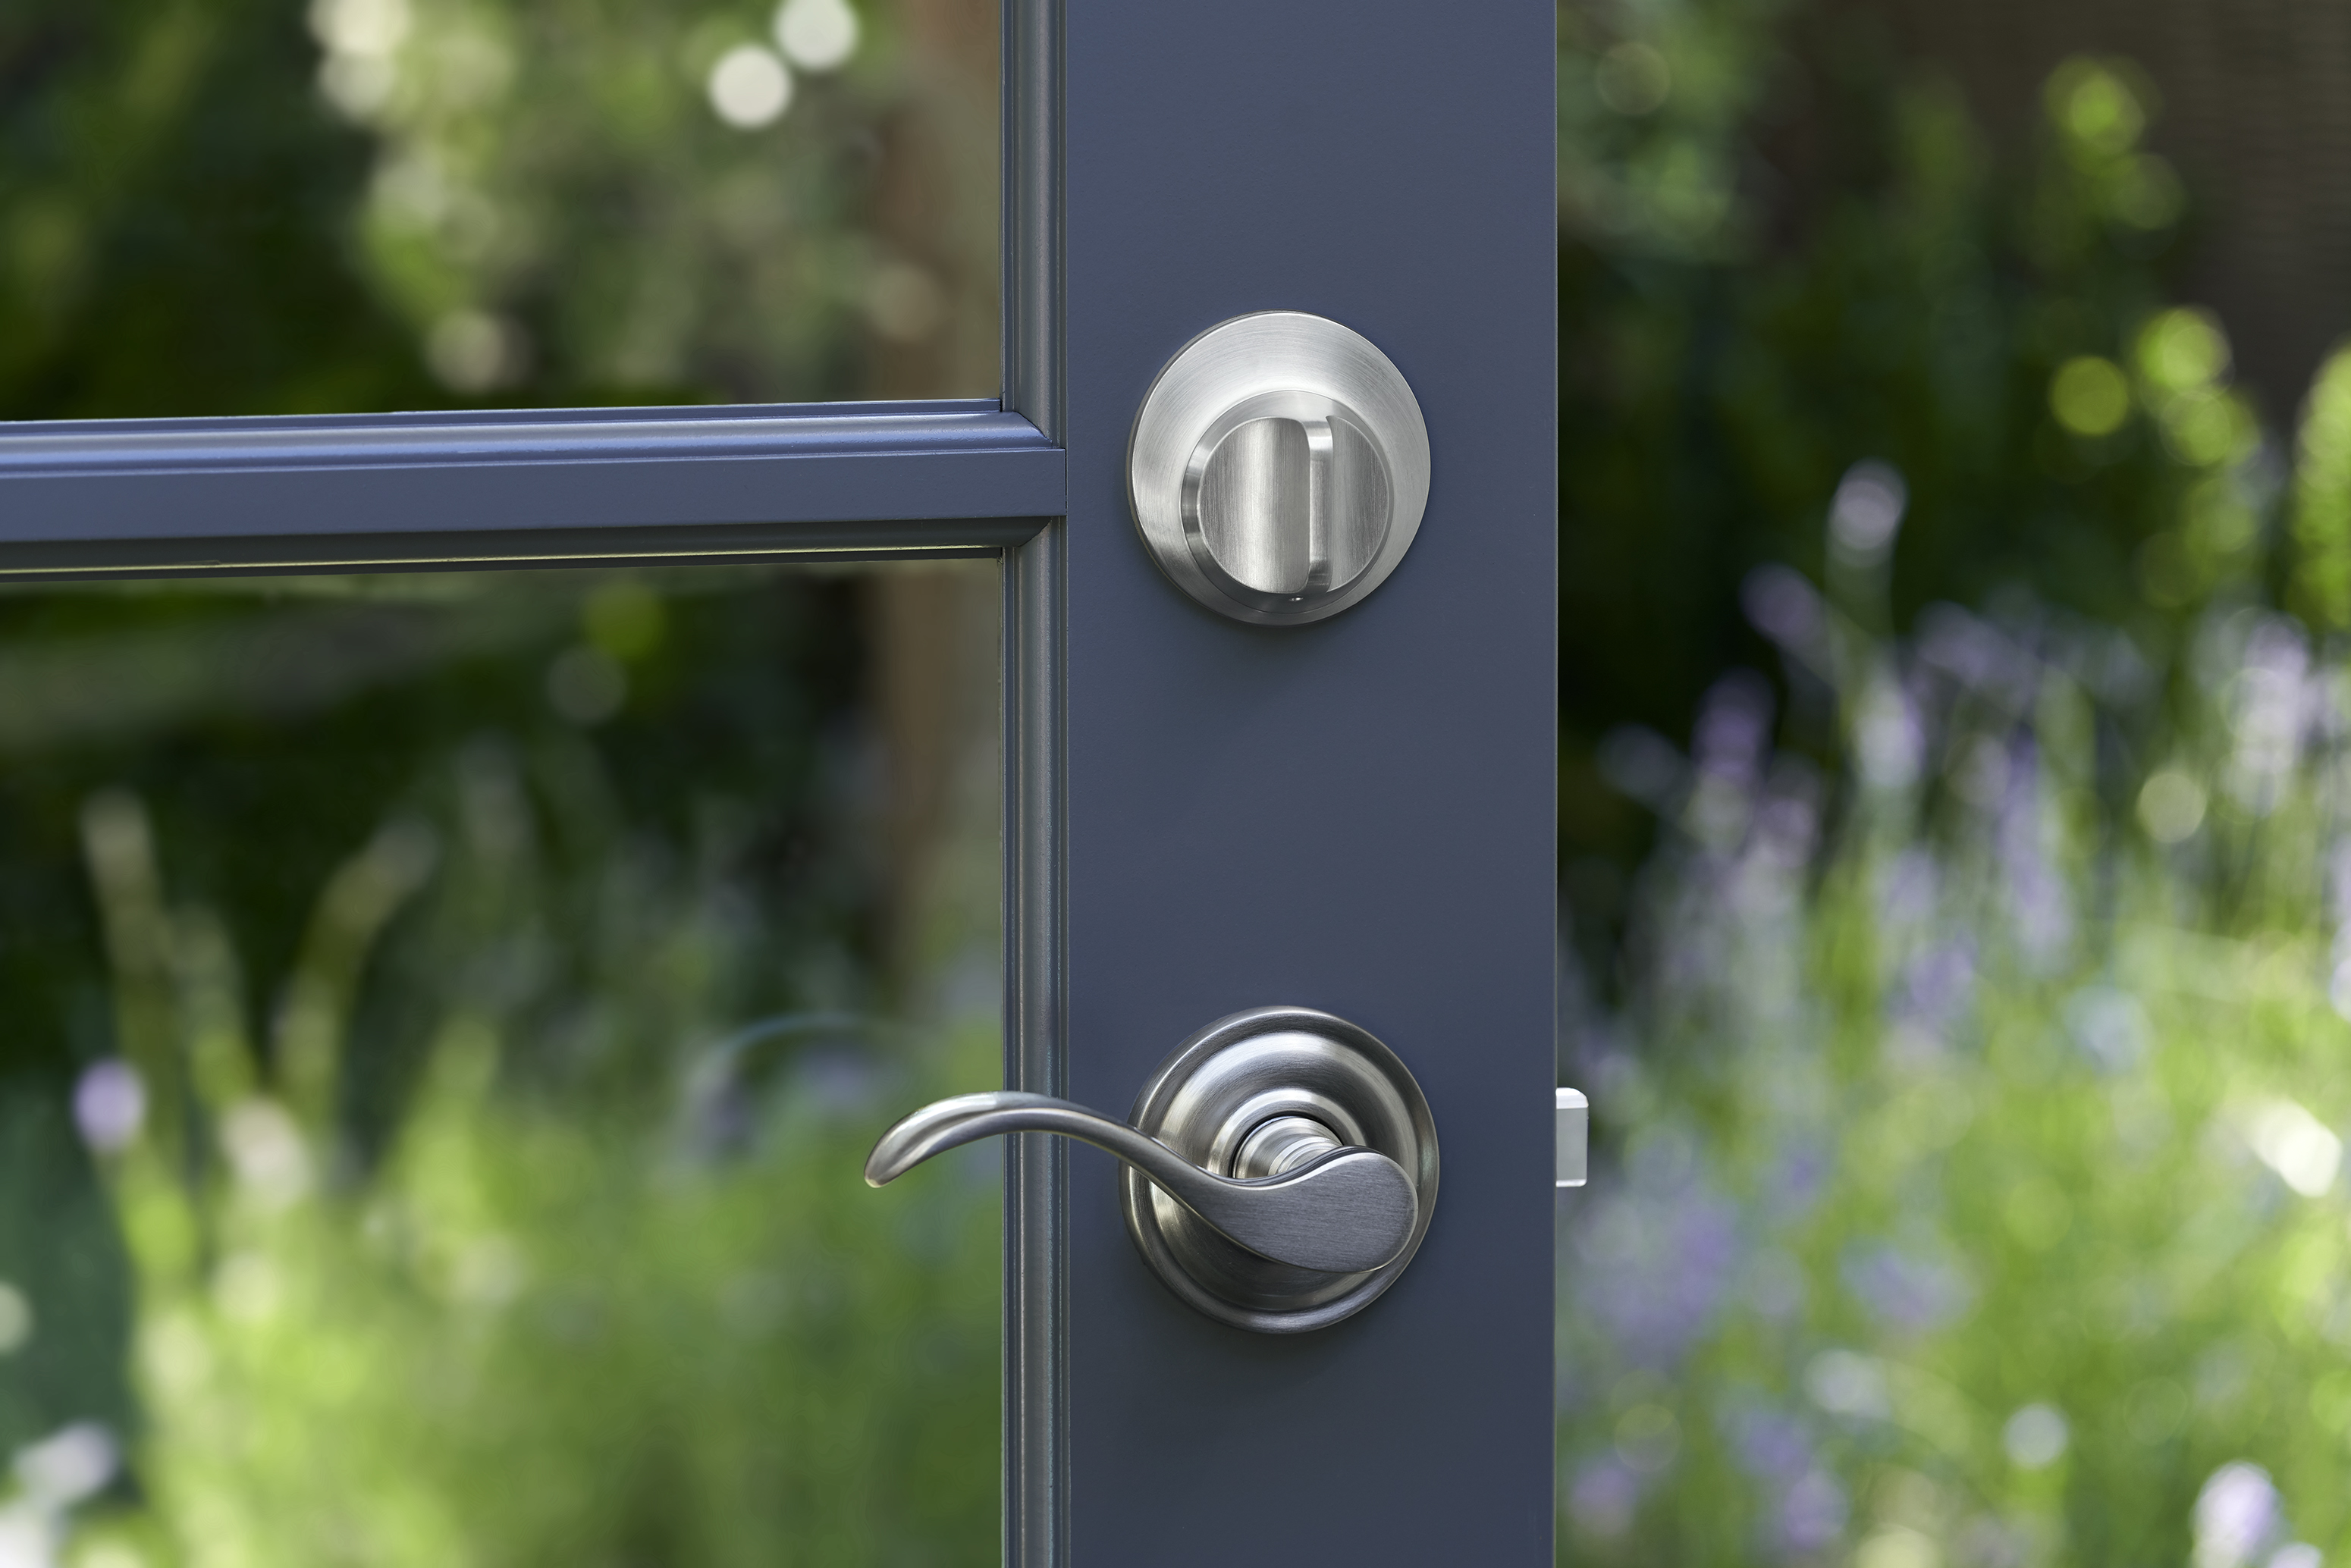 Level Home introduces Level Touch, a sleek smart lock that doesn't advertise its intelligence 3